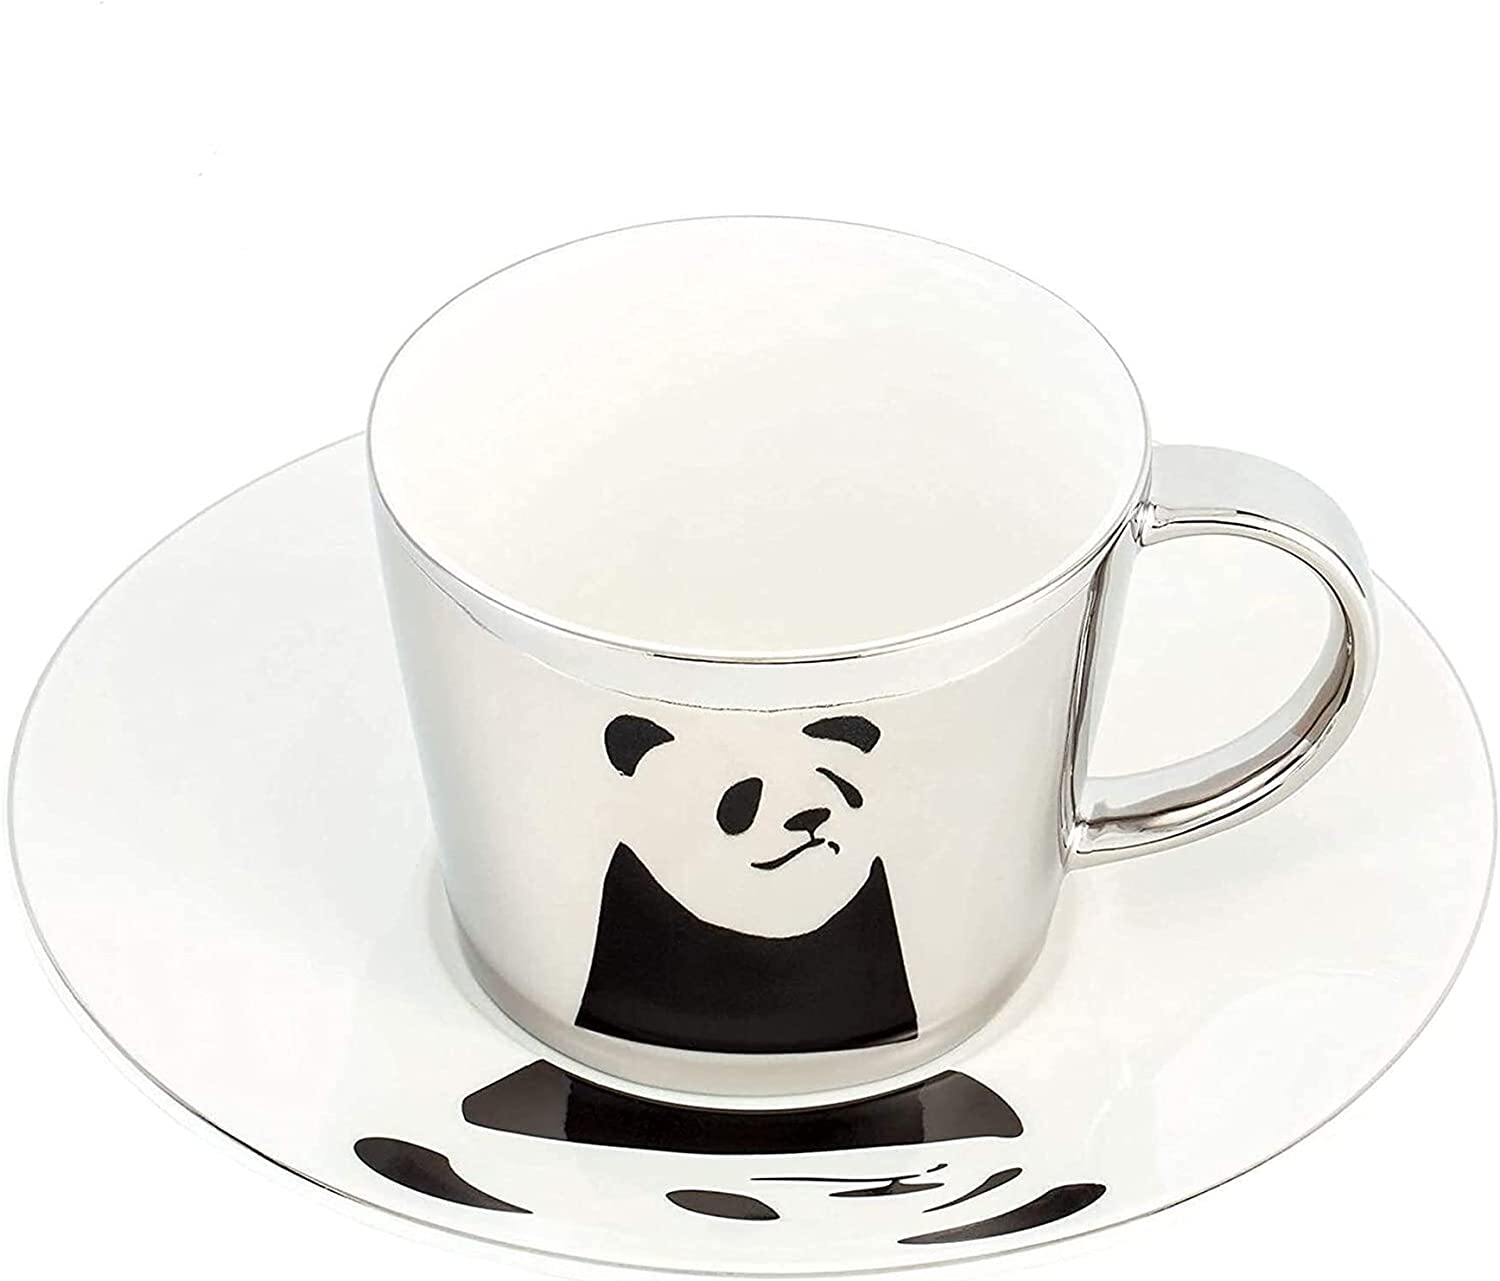 Creative Handmade Mirror Plated Bargain Cup Saucer Set Ce and Decorative Large discharge sale